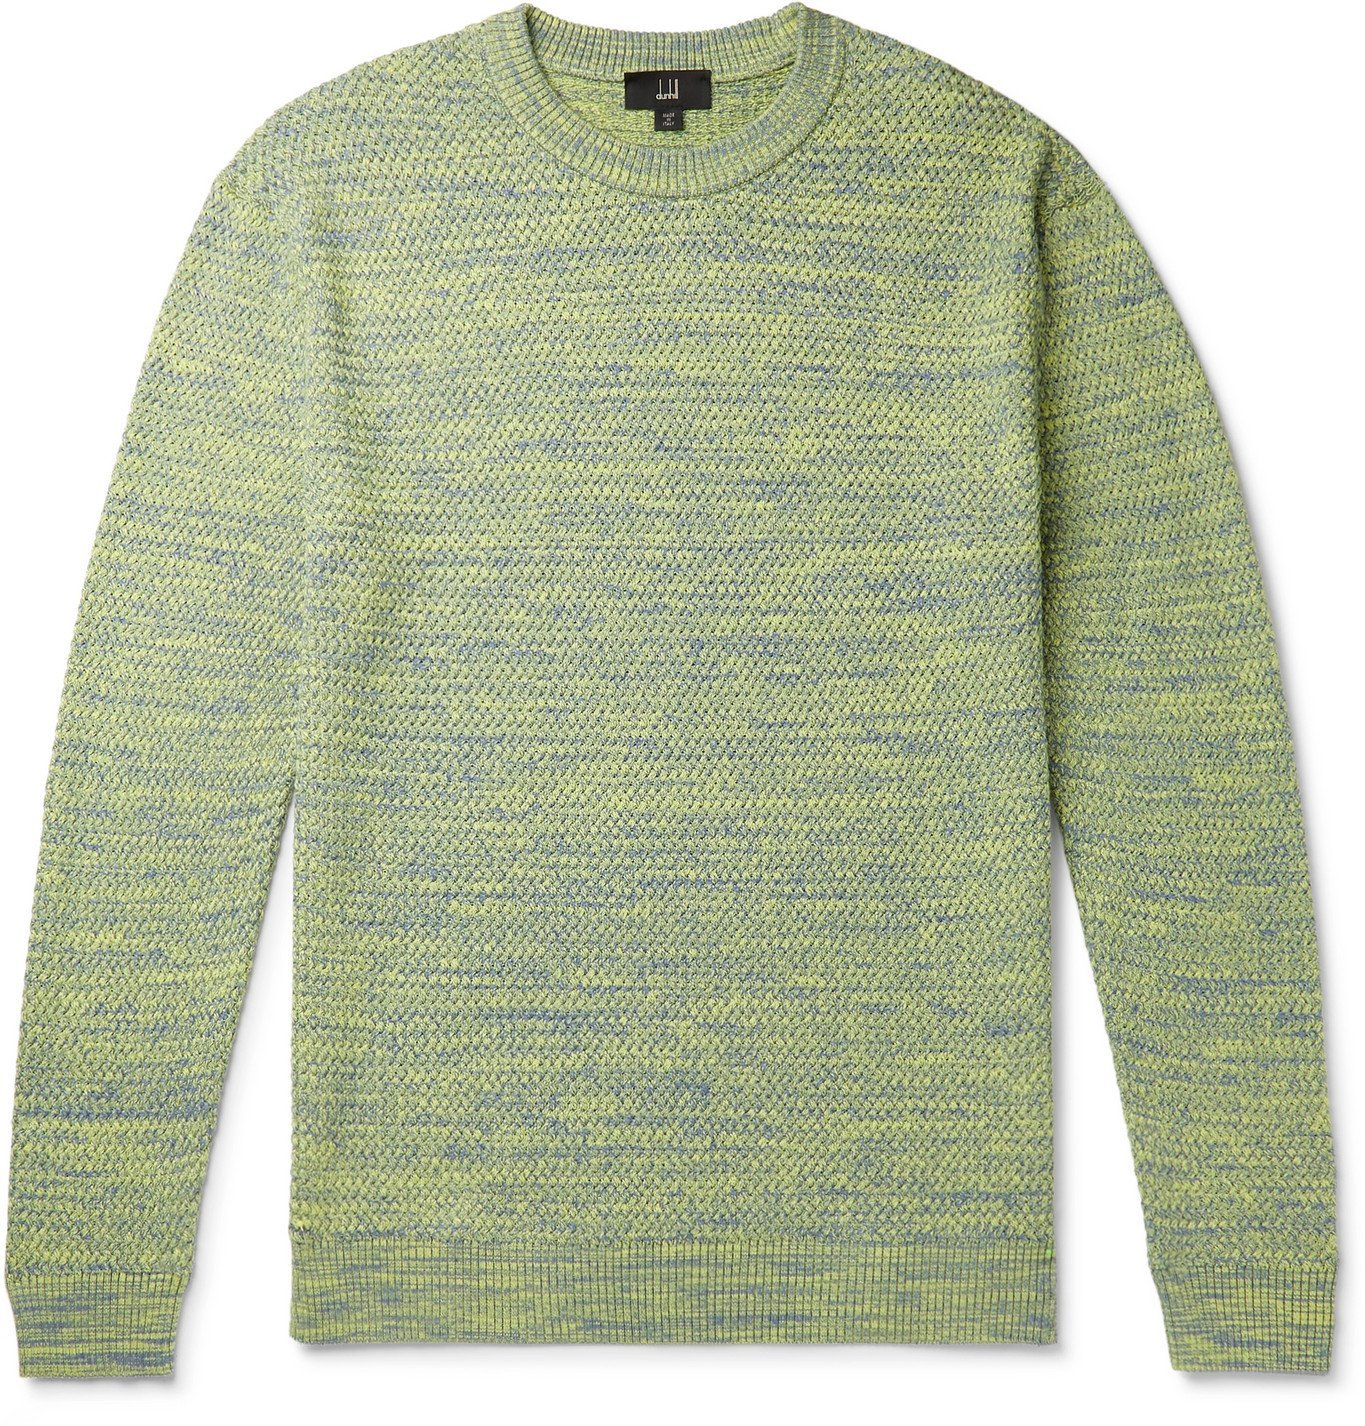 DUNHILL - Mélange Cotton Sweater - Yellow